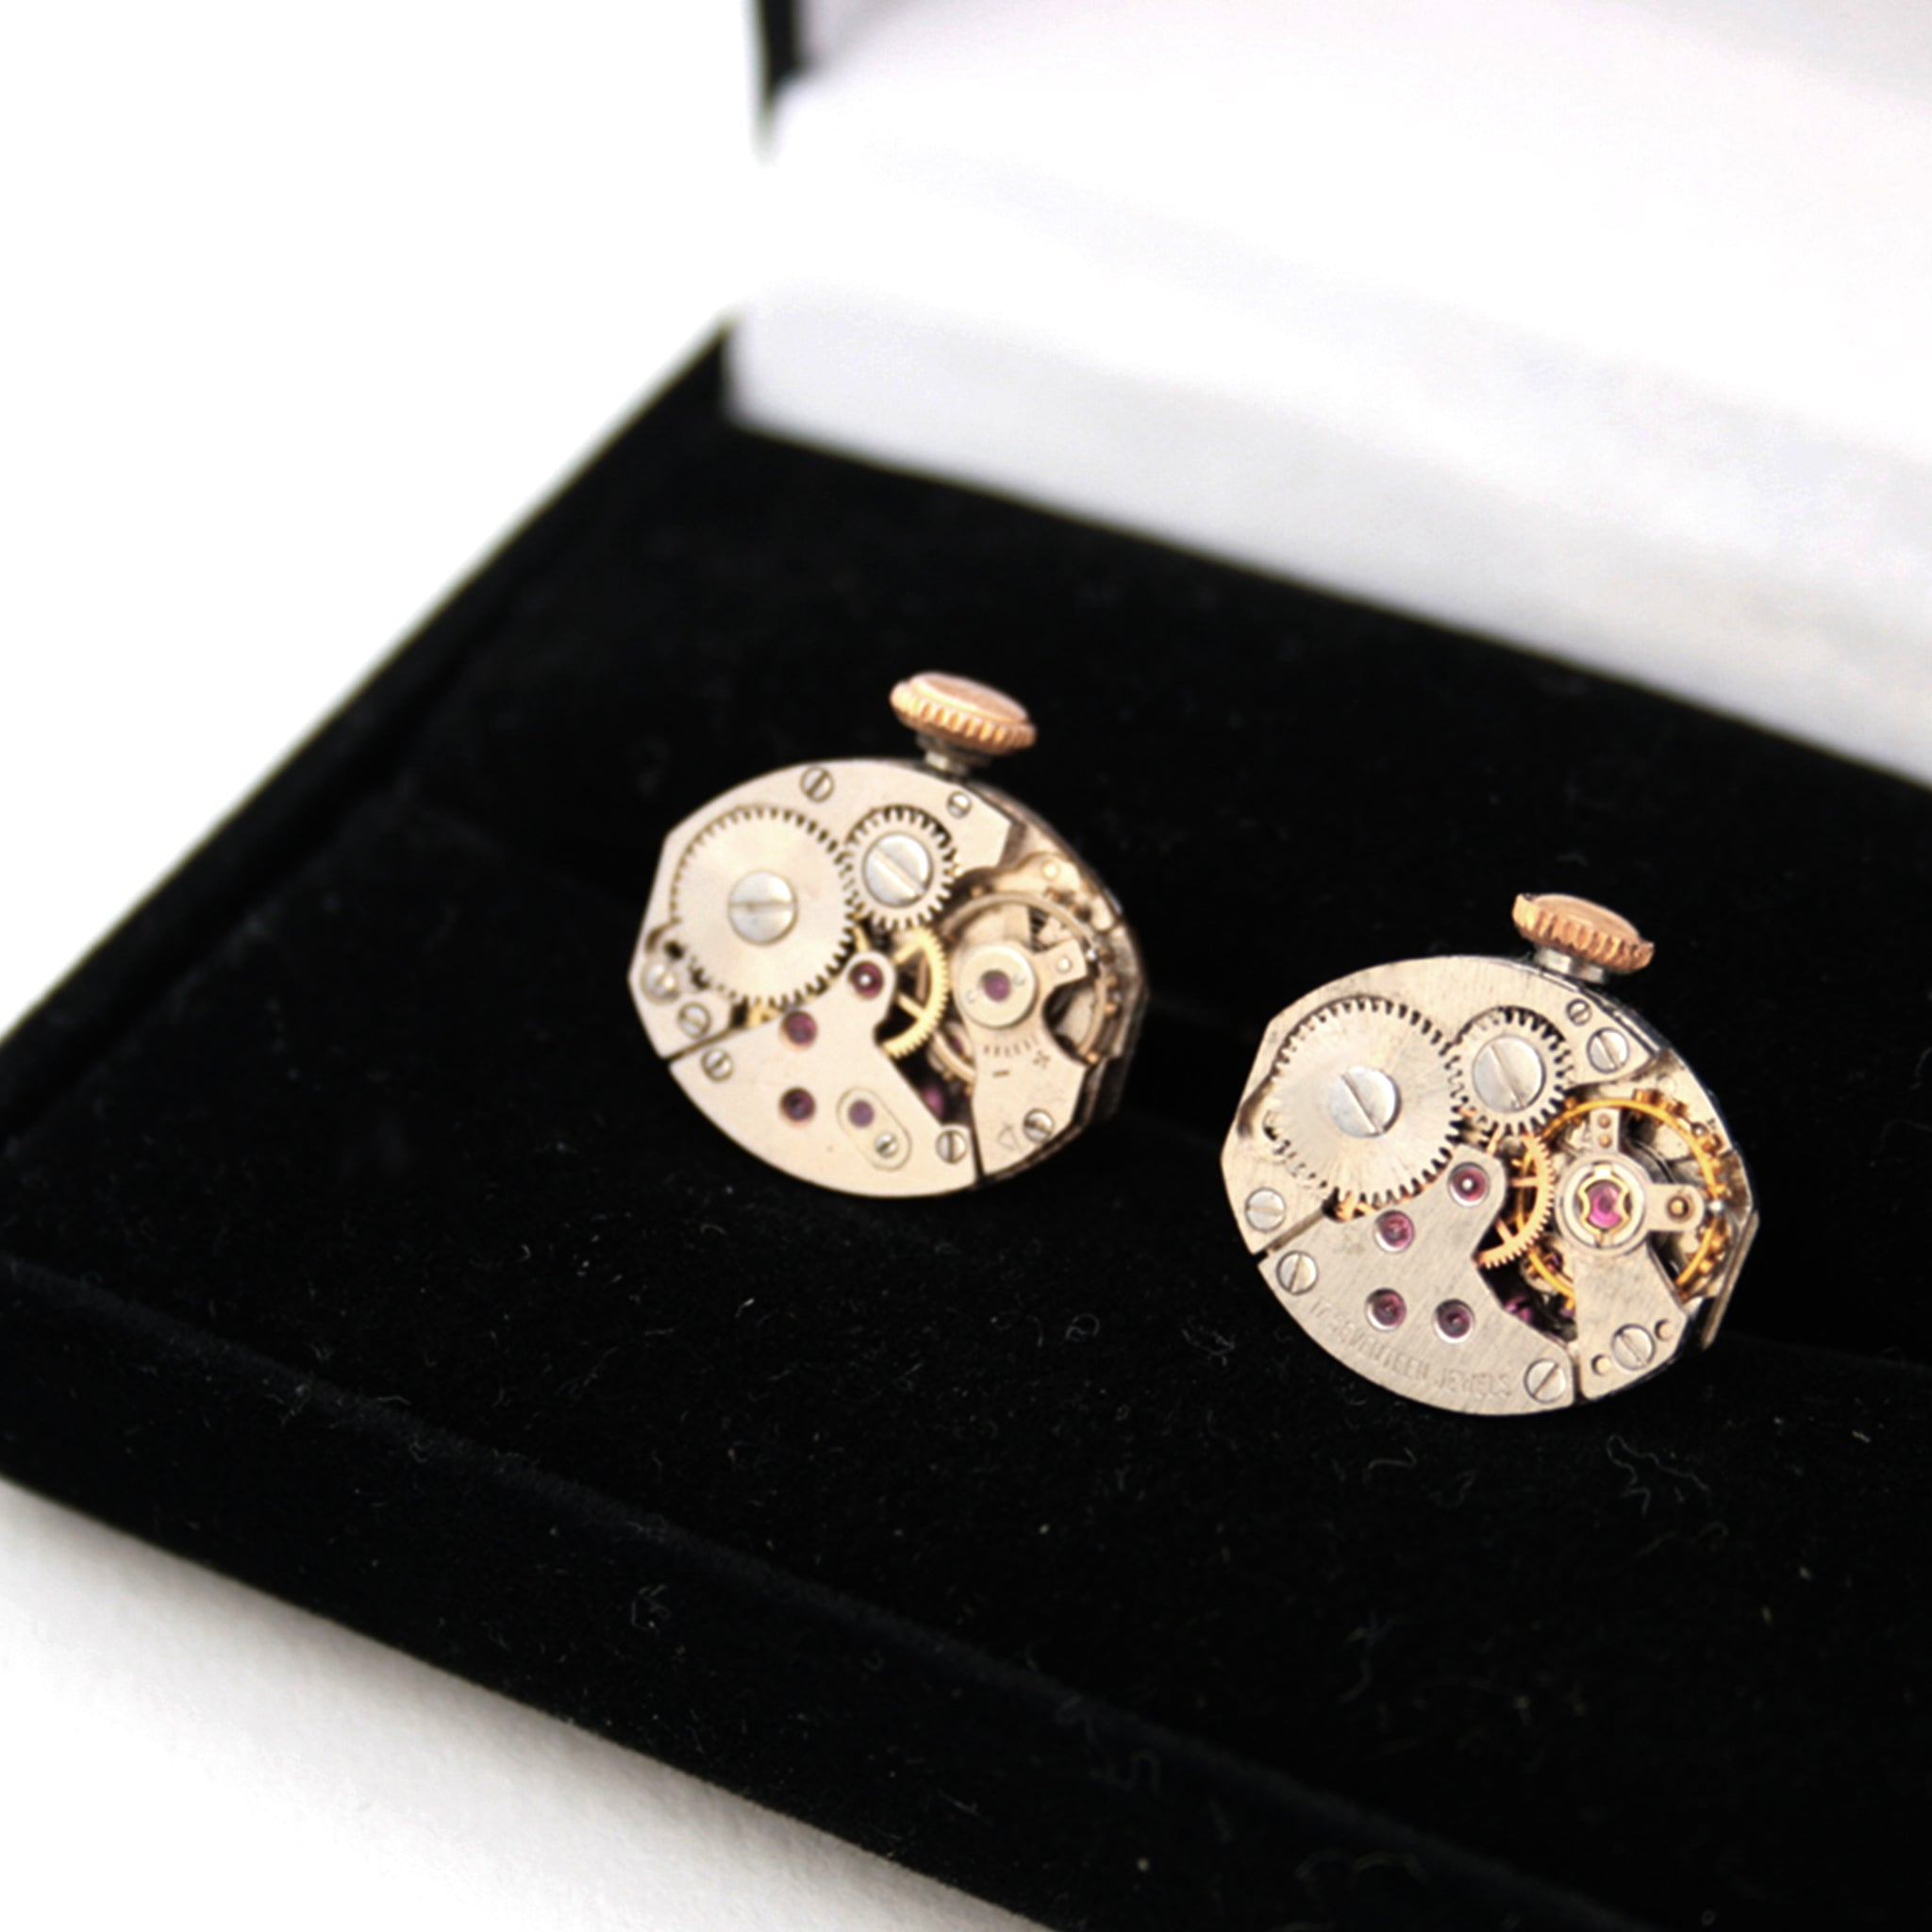 steampunk wedding cufflinks featuring antique watch movements with wind ups in a black velour box